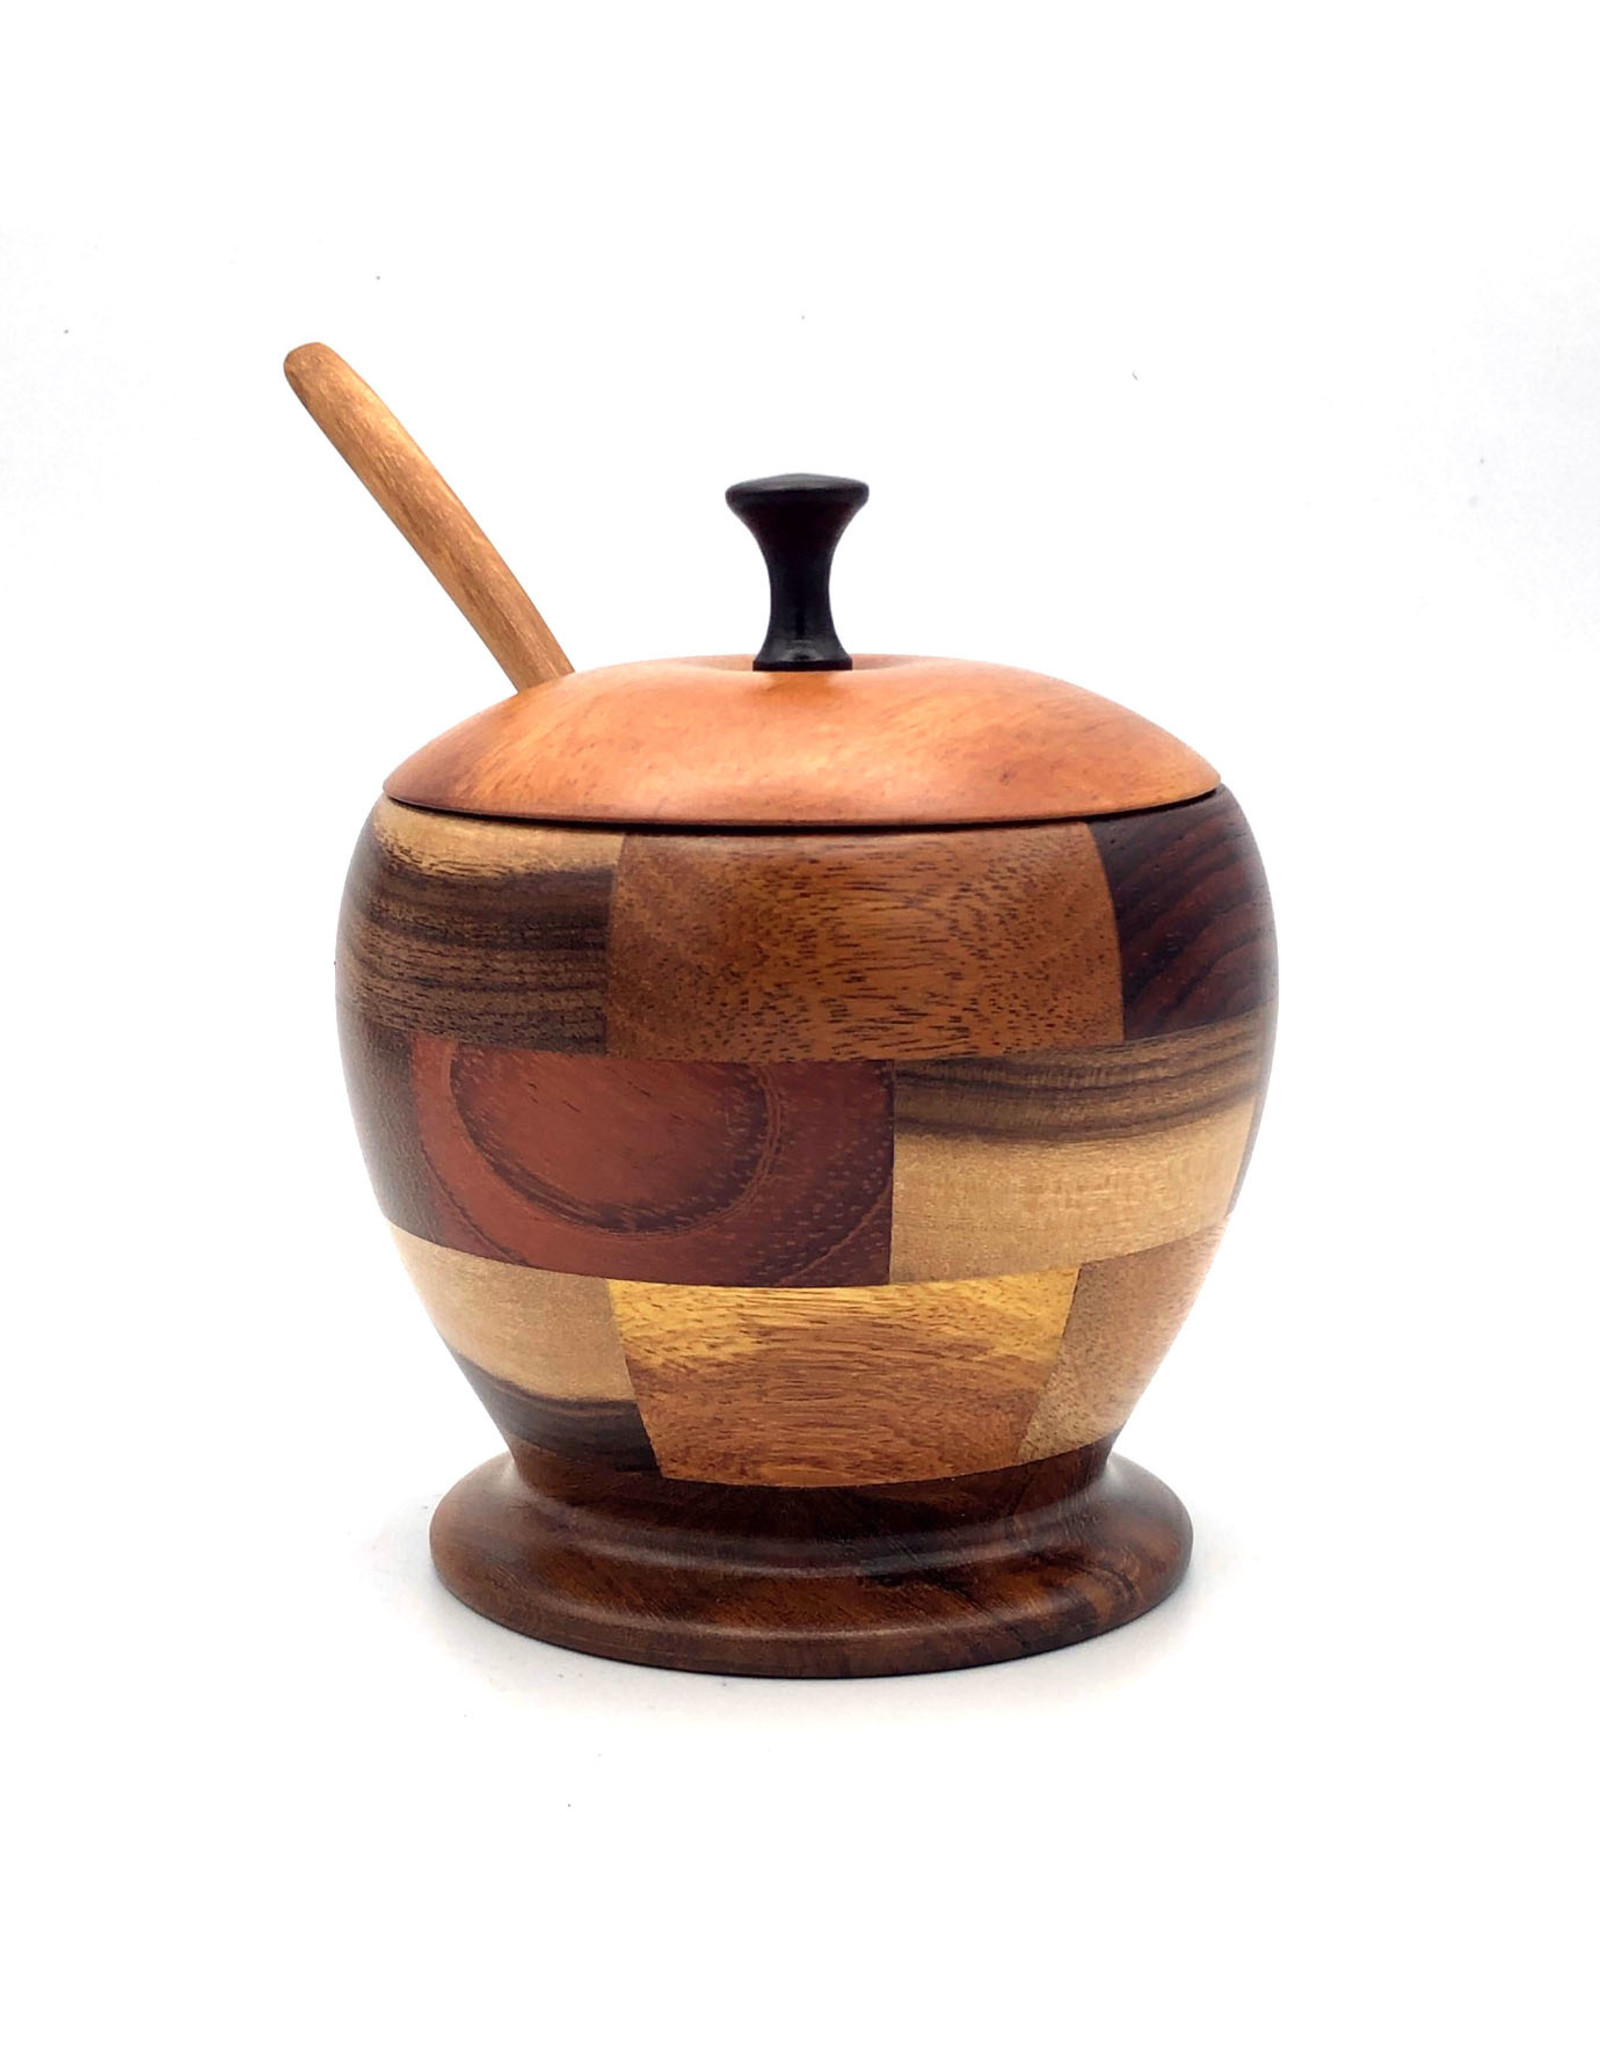 Women of the Cloud Forest Sustainable Hardwood Sugar Bowl, Nicaragua